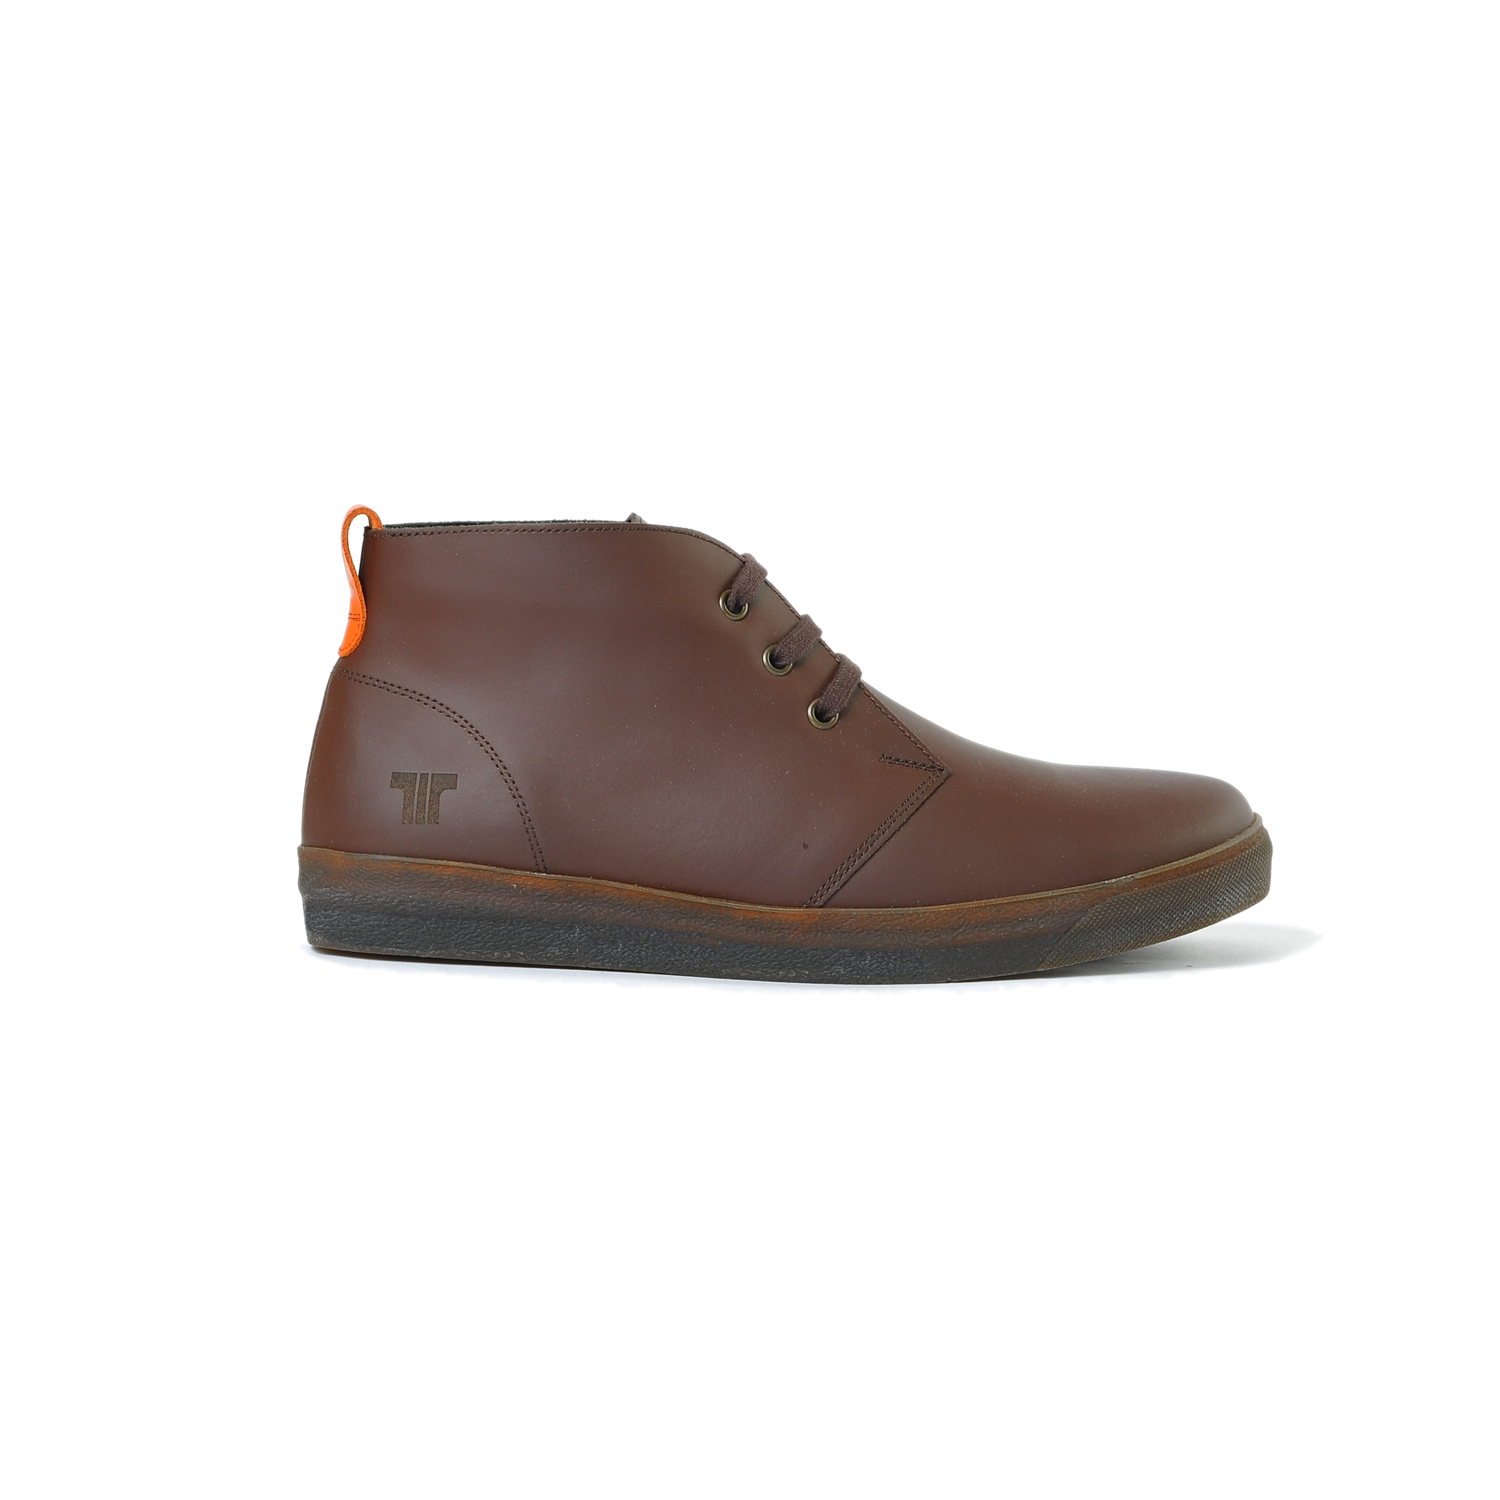 Tisza shoes - Alfa - Brown-orange padded